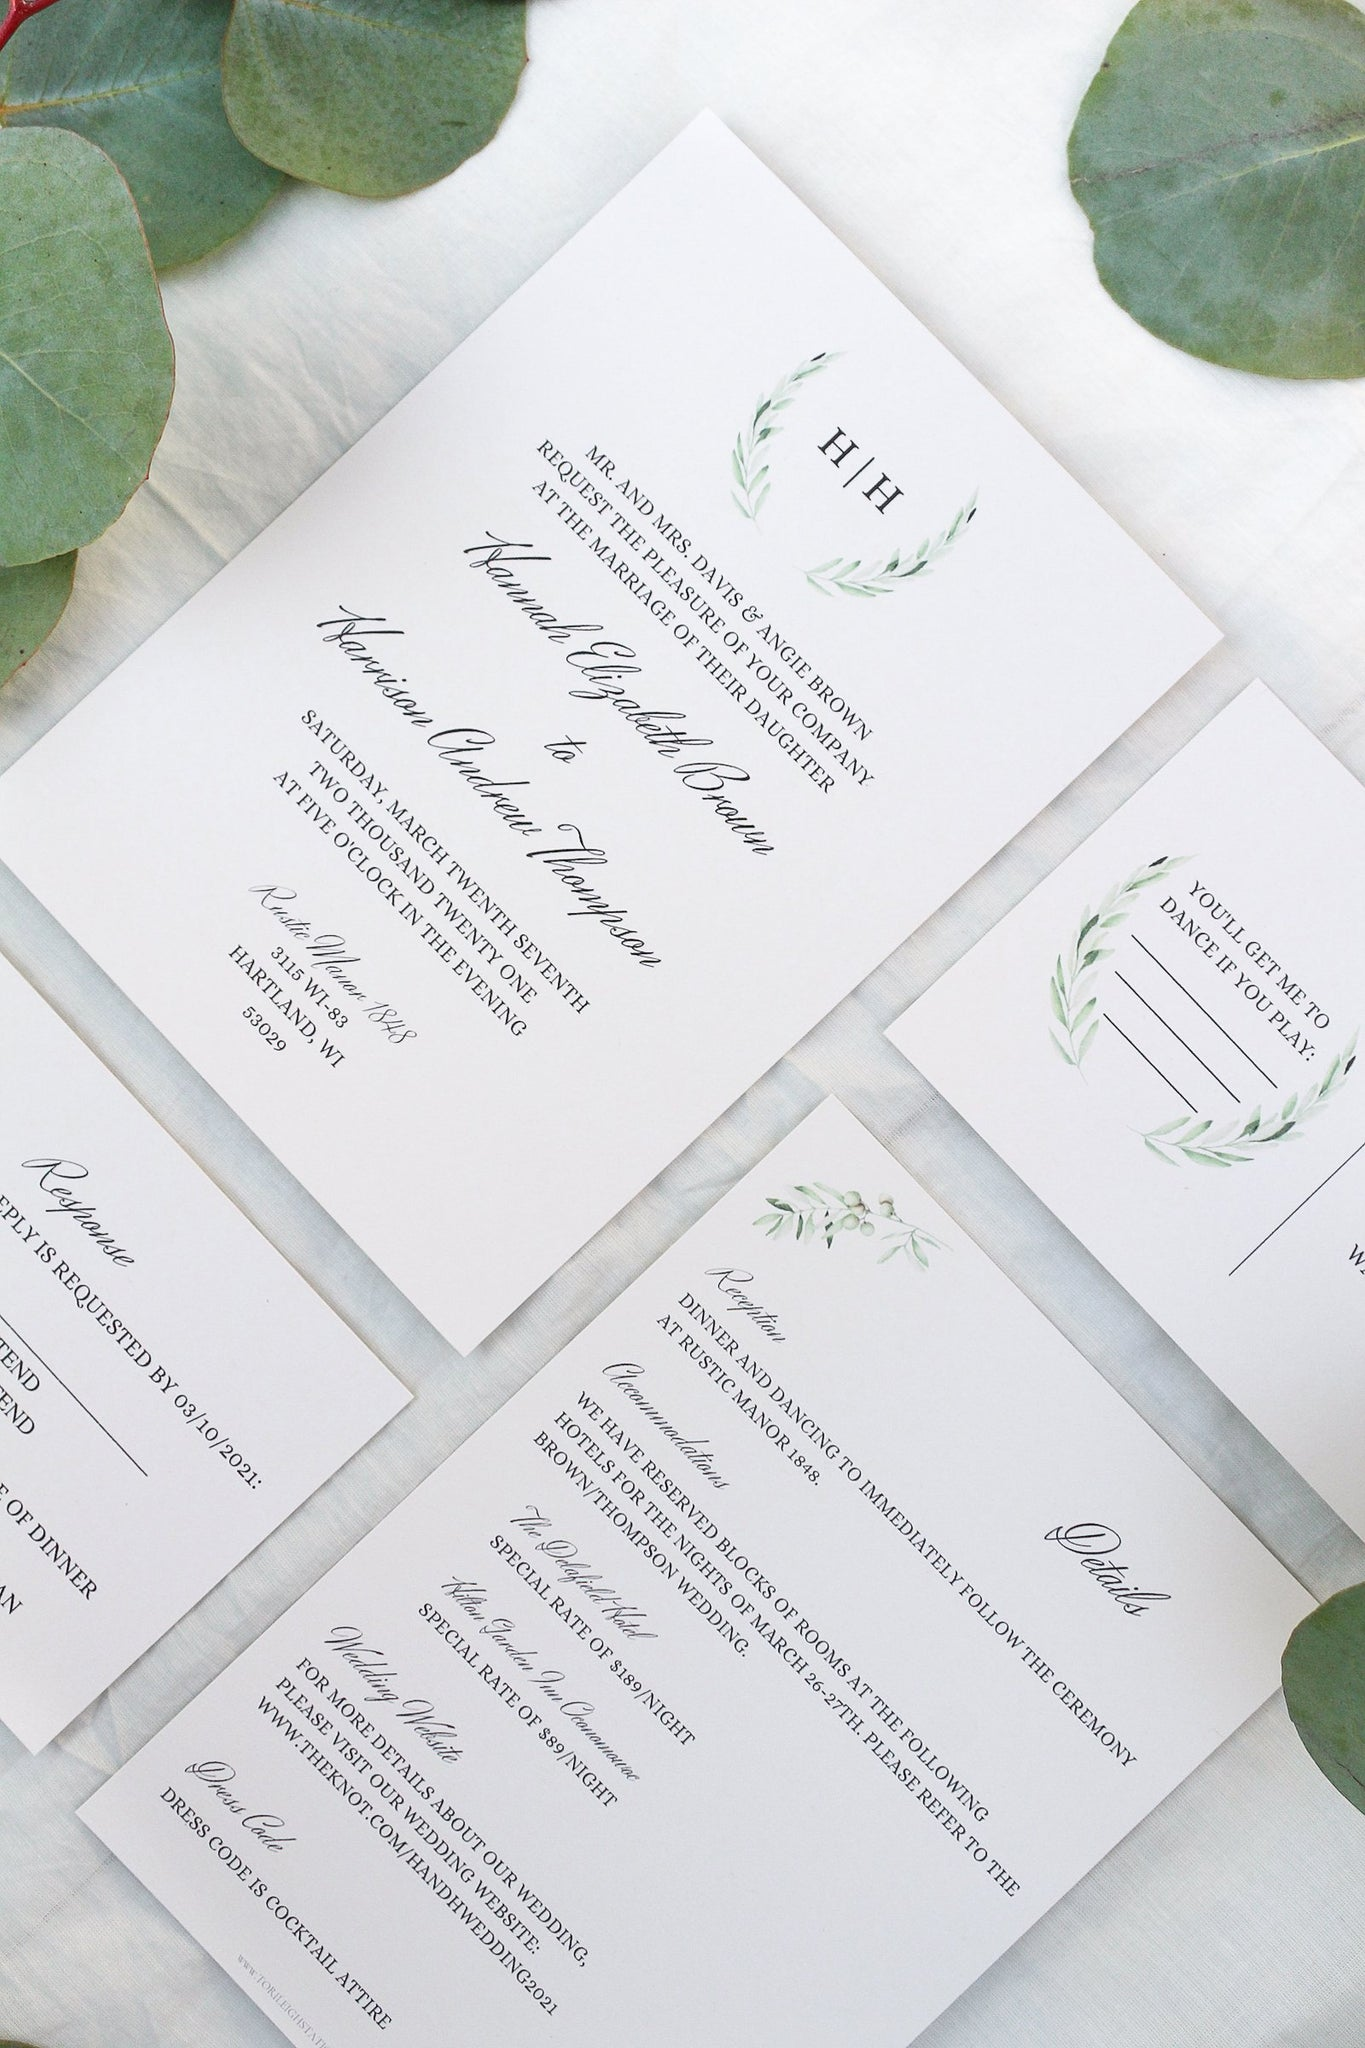 laurel wreath, olive branch, elegant calligraphy wedding invitations sustainably printed on 100% recycled paper